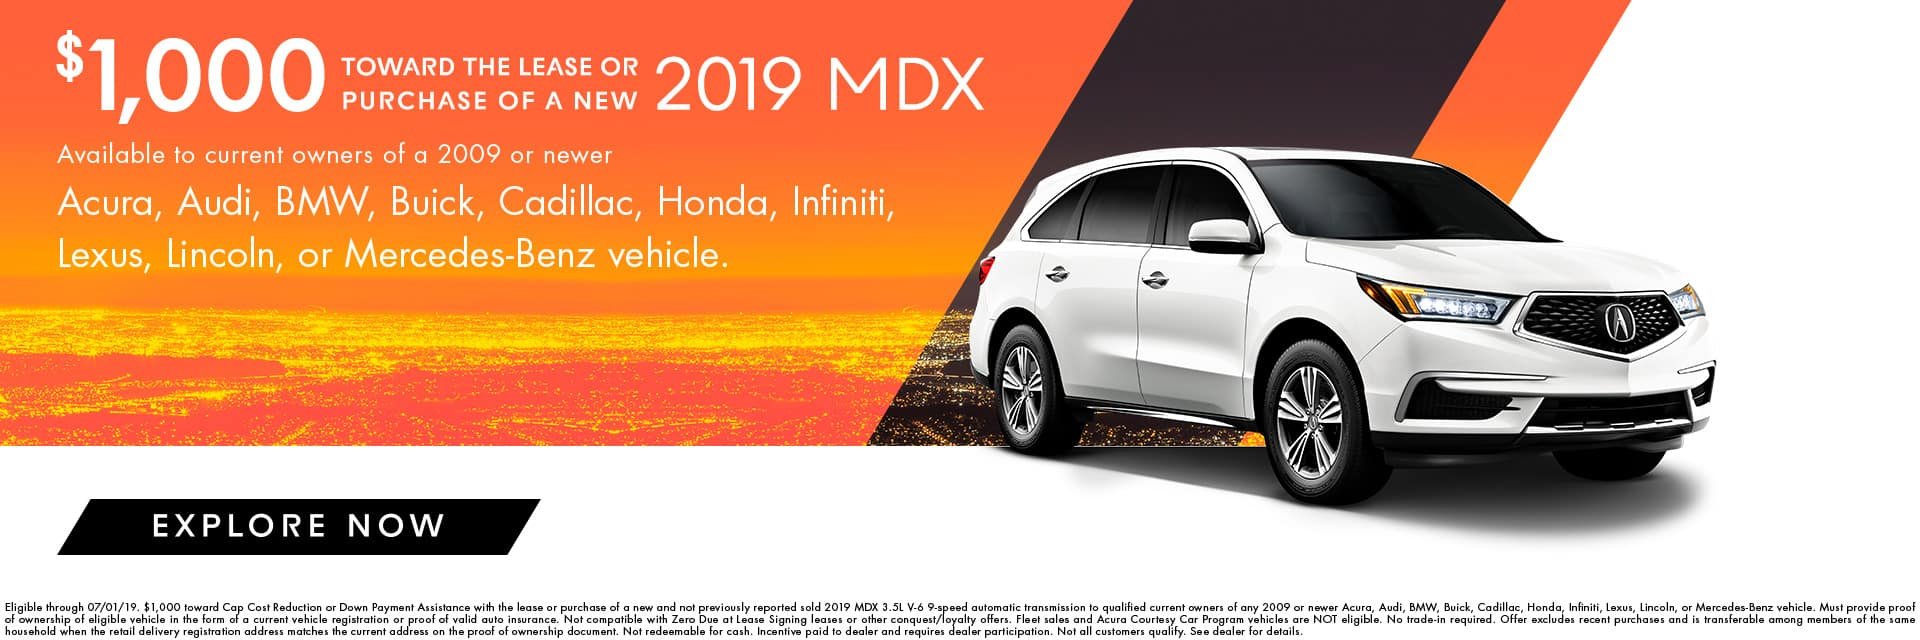 mdx loyalty offer